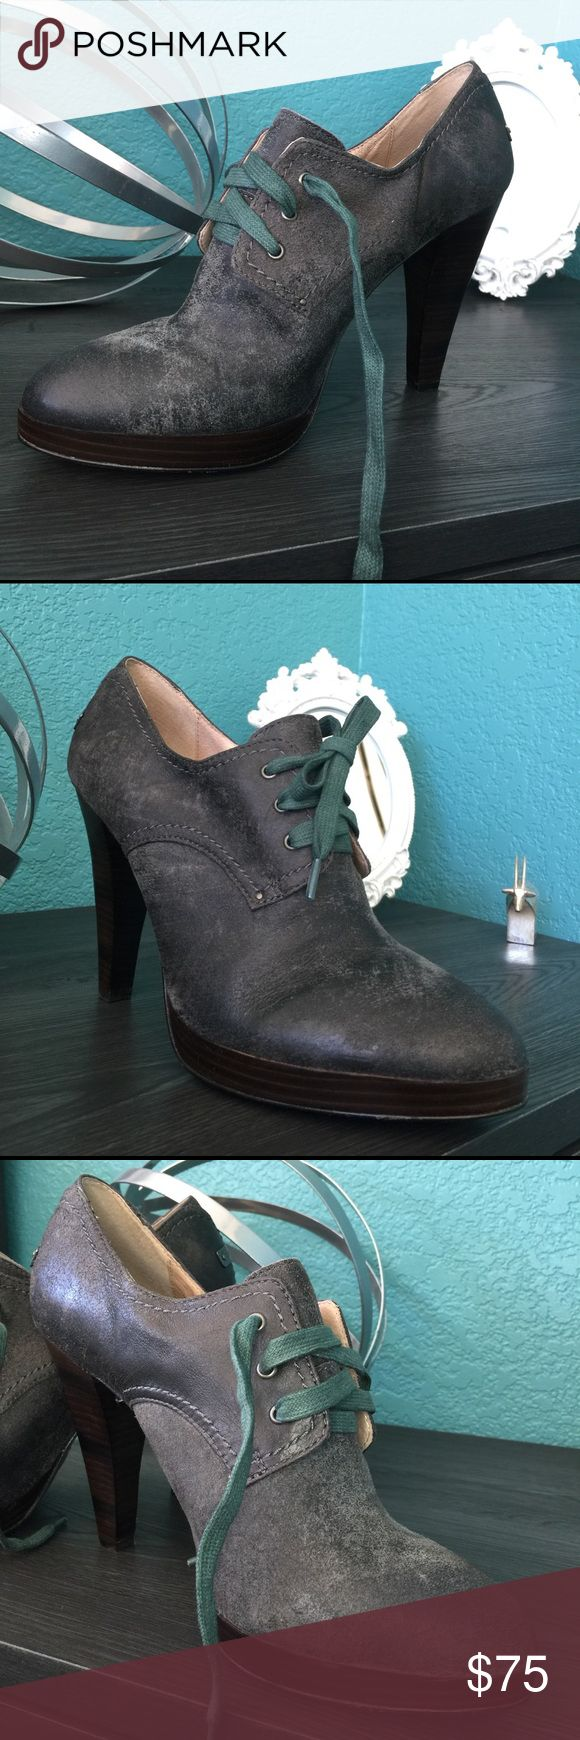 Frye Harlow Oxford Distressed Black Leather Shoes Excellent condition Frye Harlow shoes!  Never been worn!  They are a distressed black leather. Frye Shoes Heels